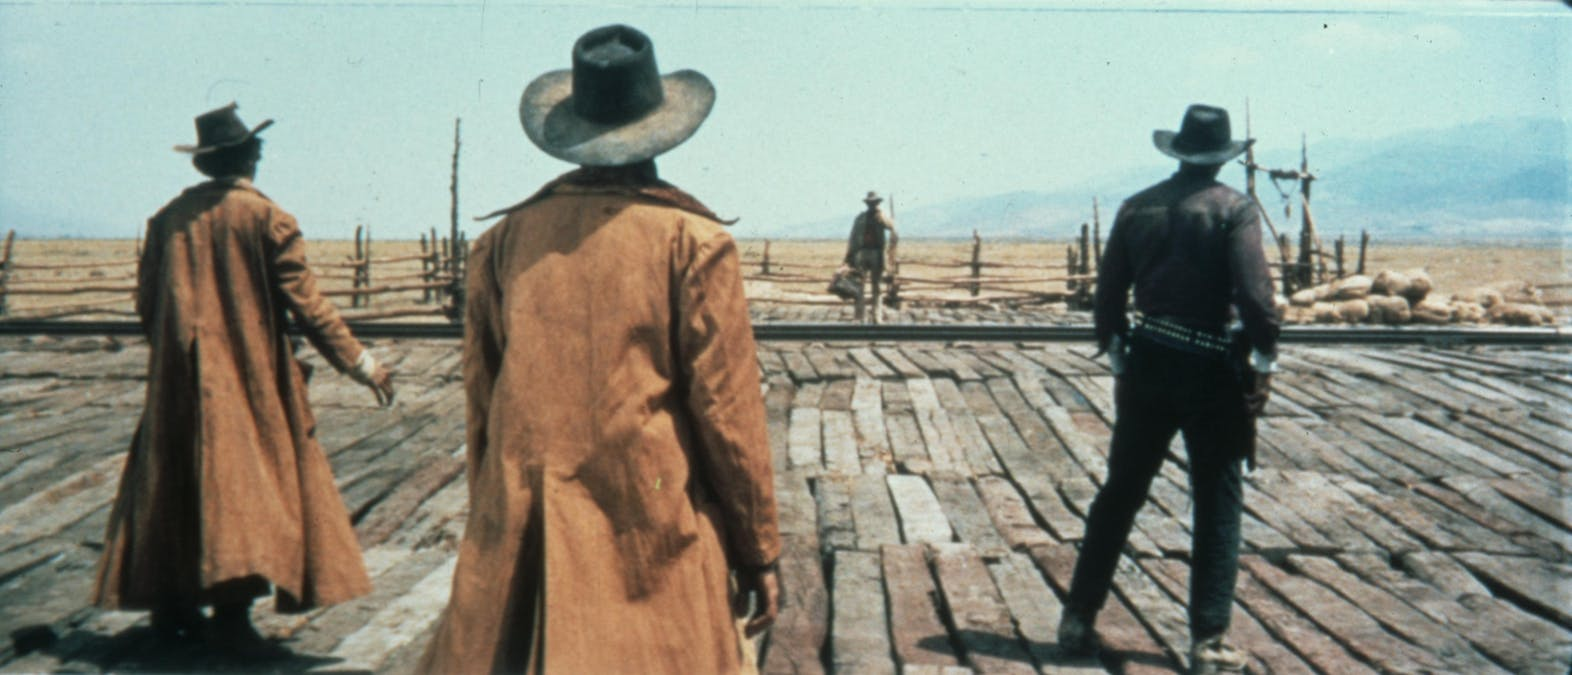 Guide: Westernfilm